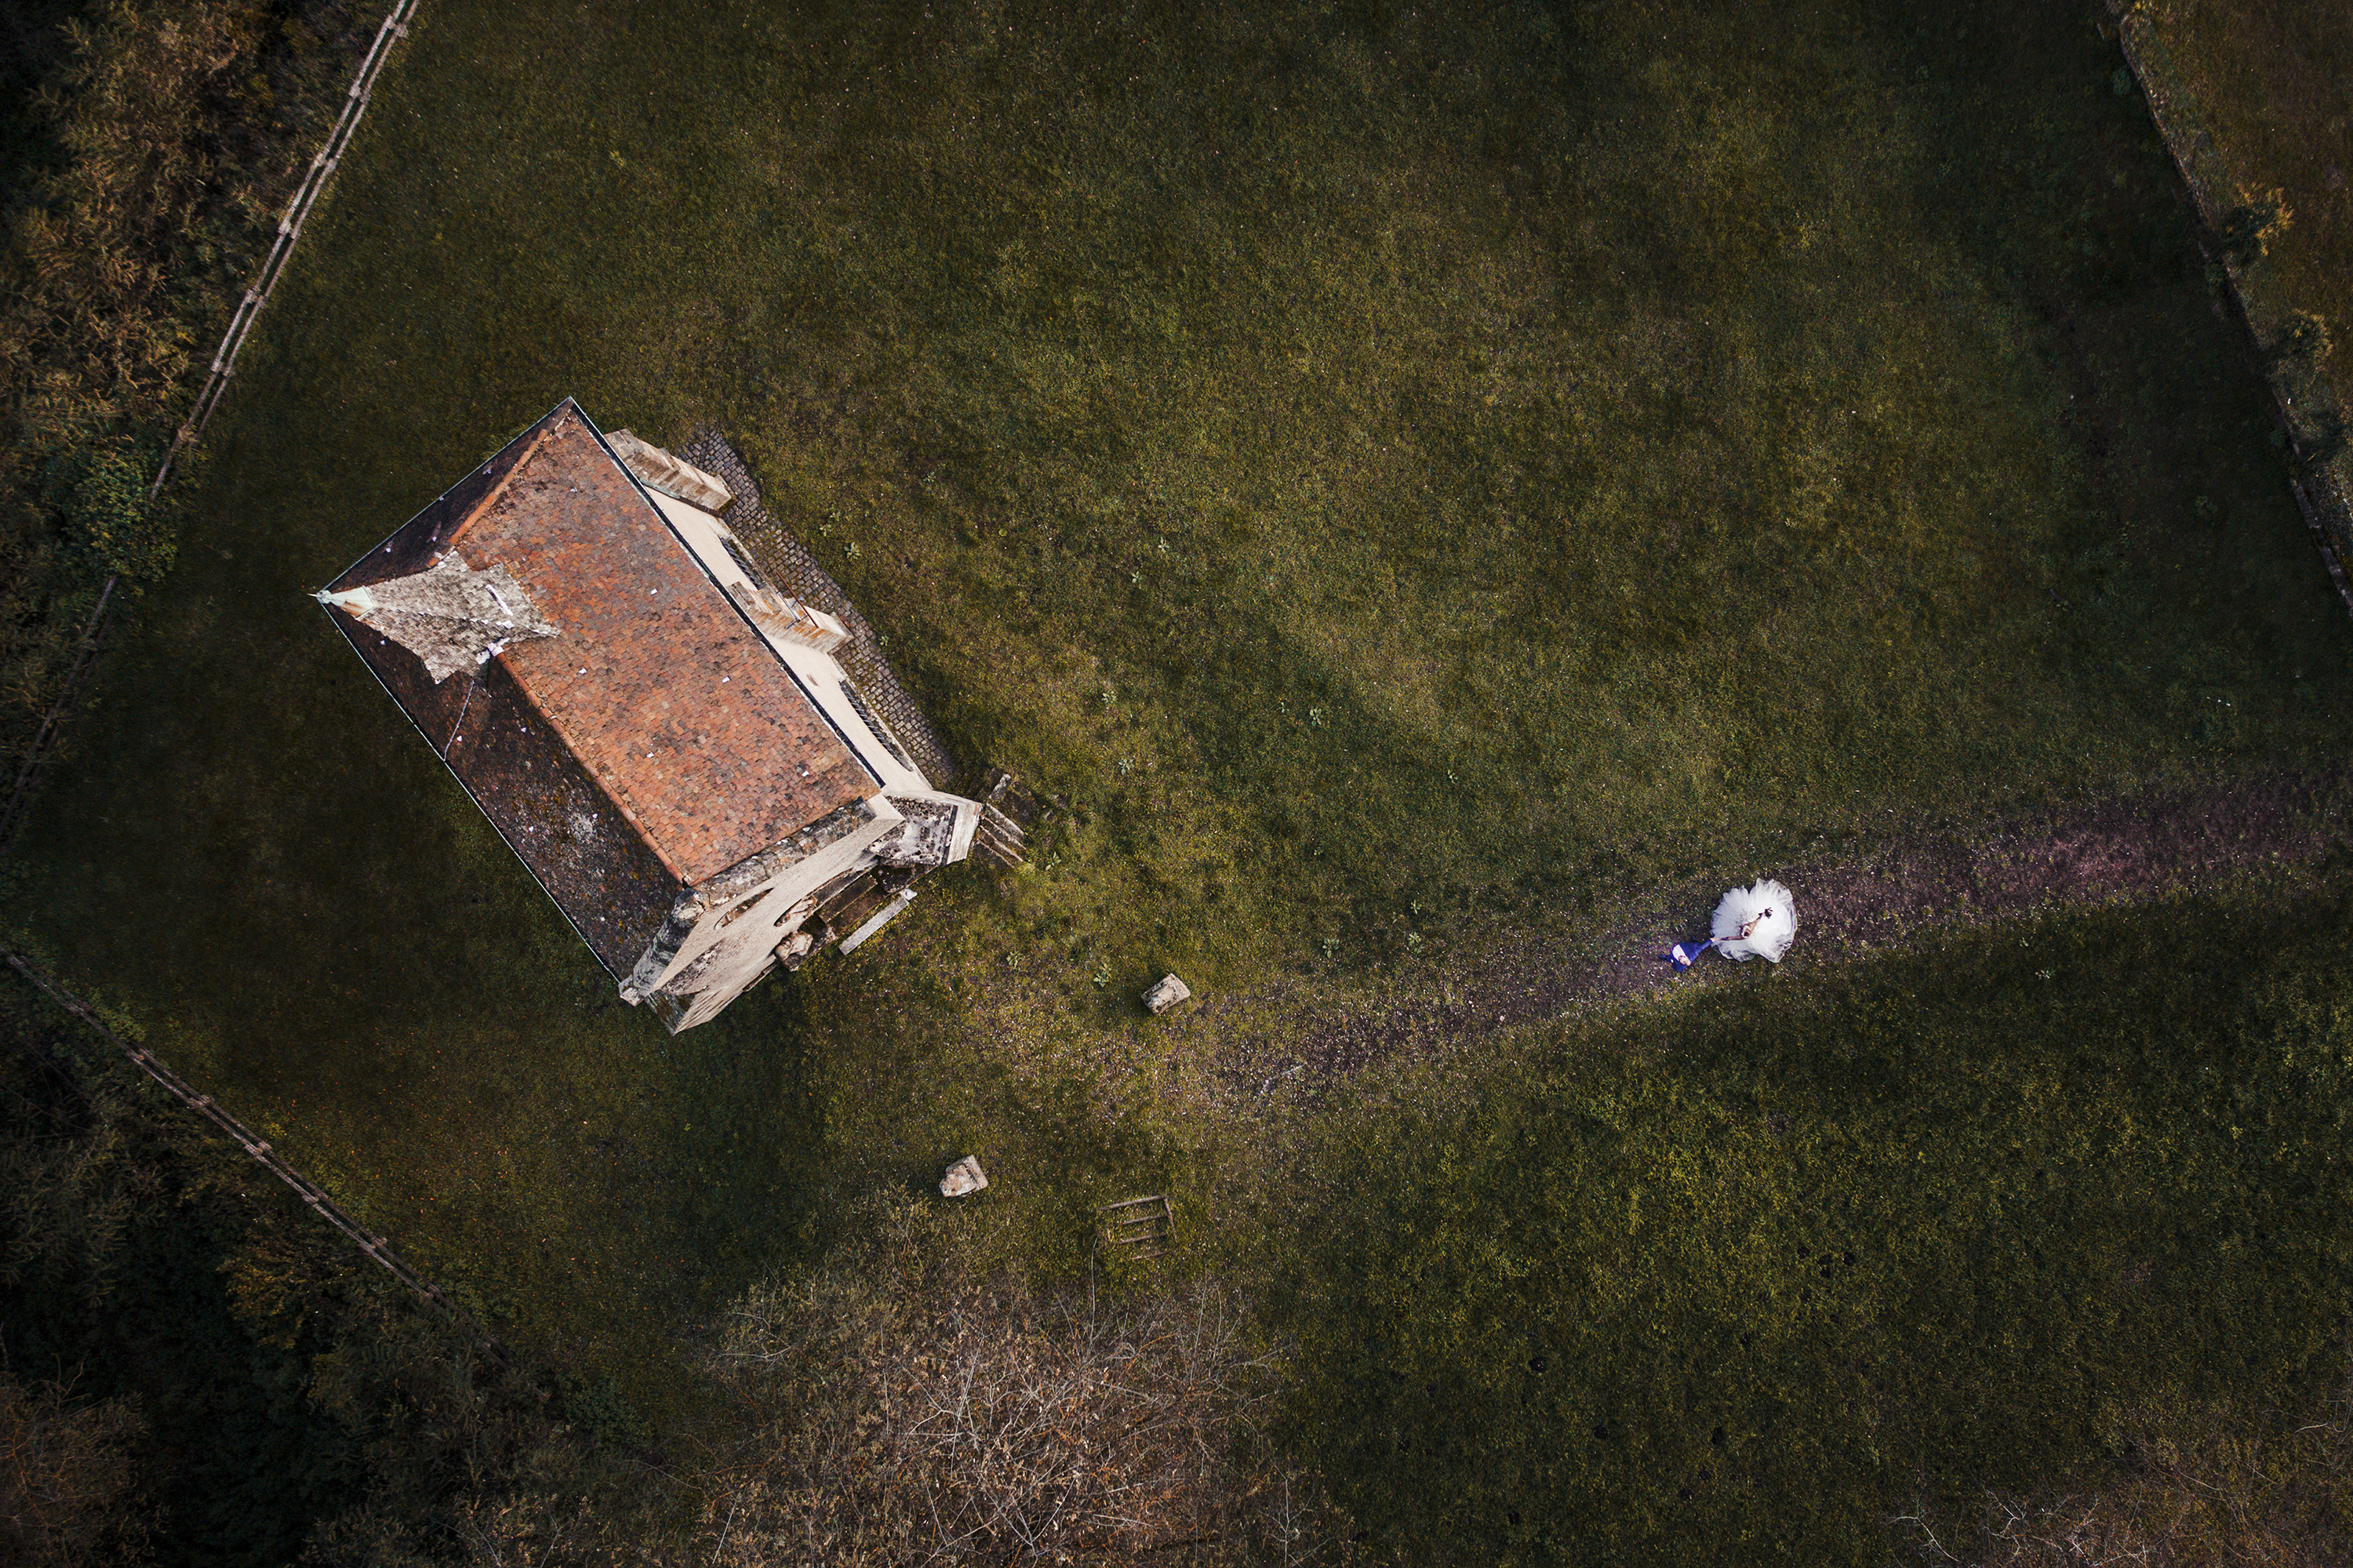 Mariage, Moselle, Drone